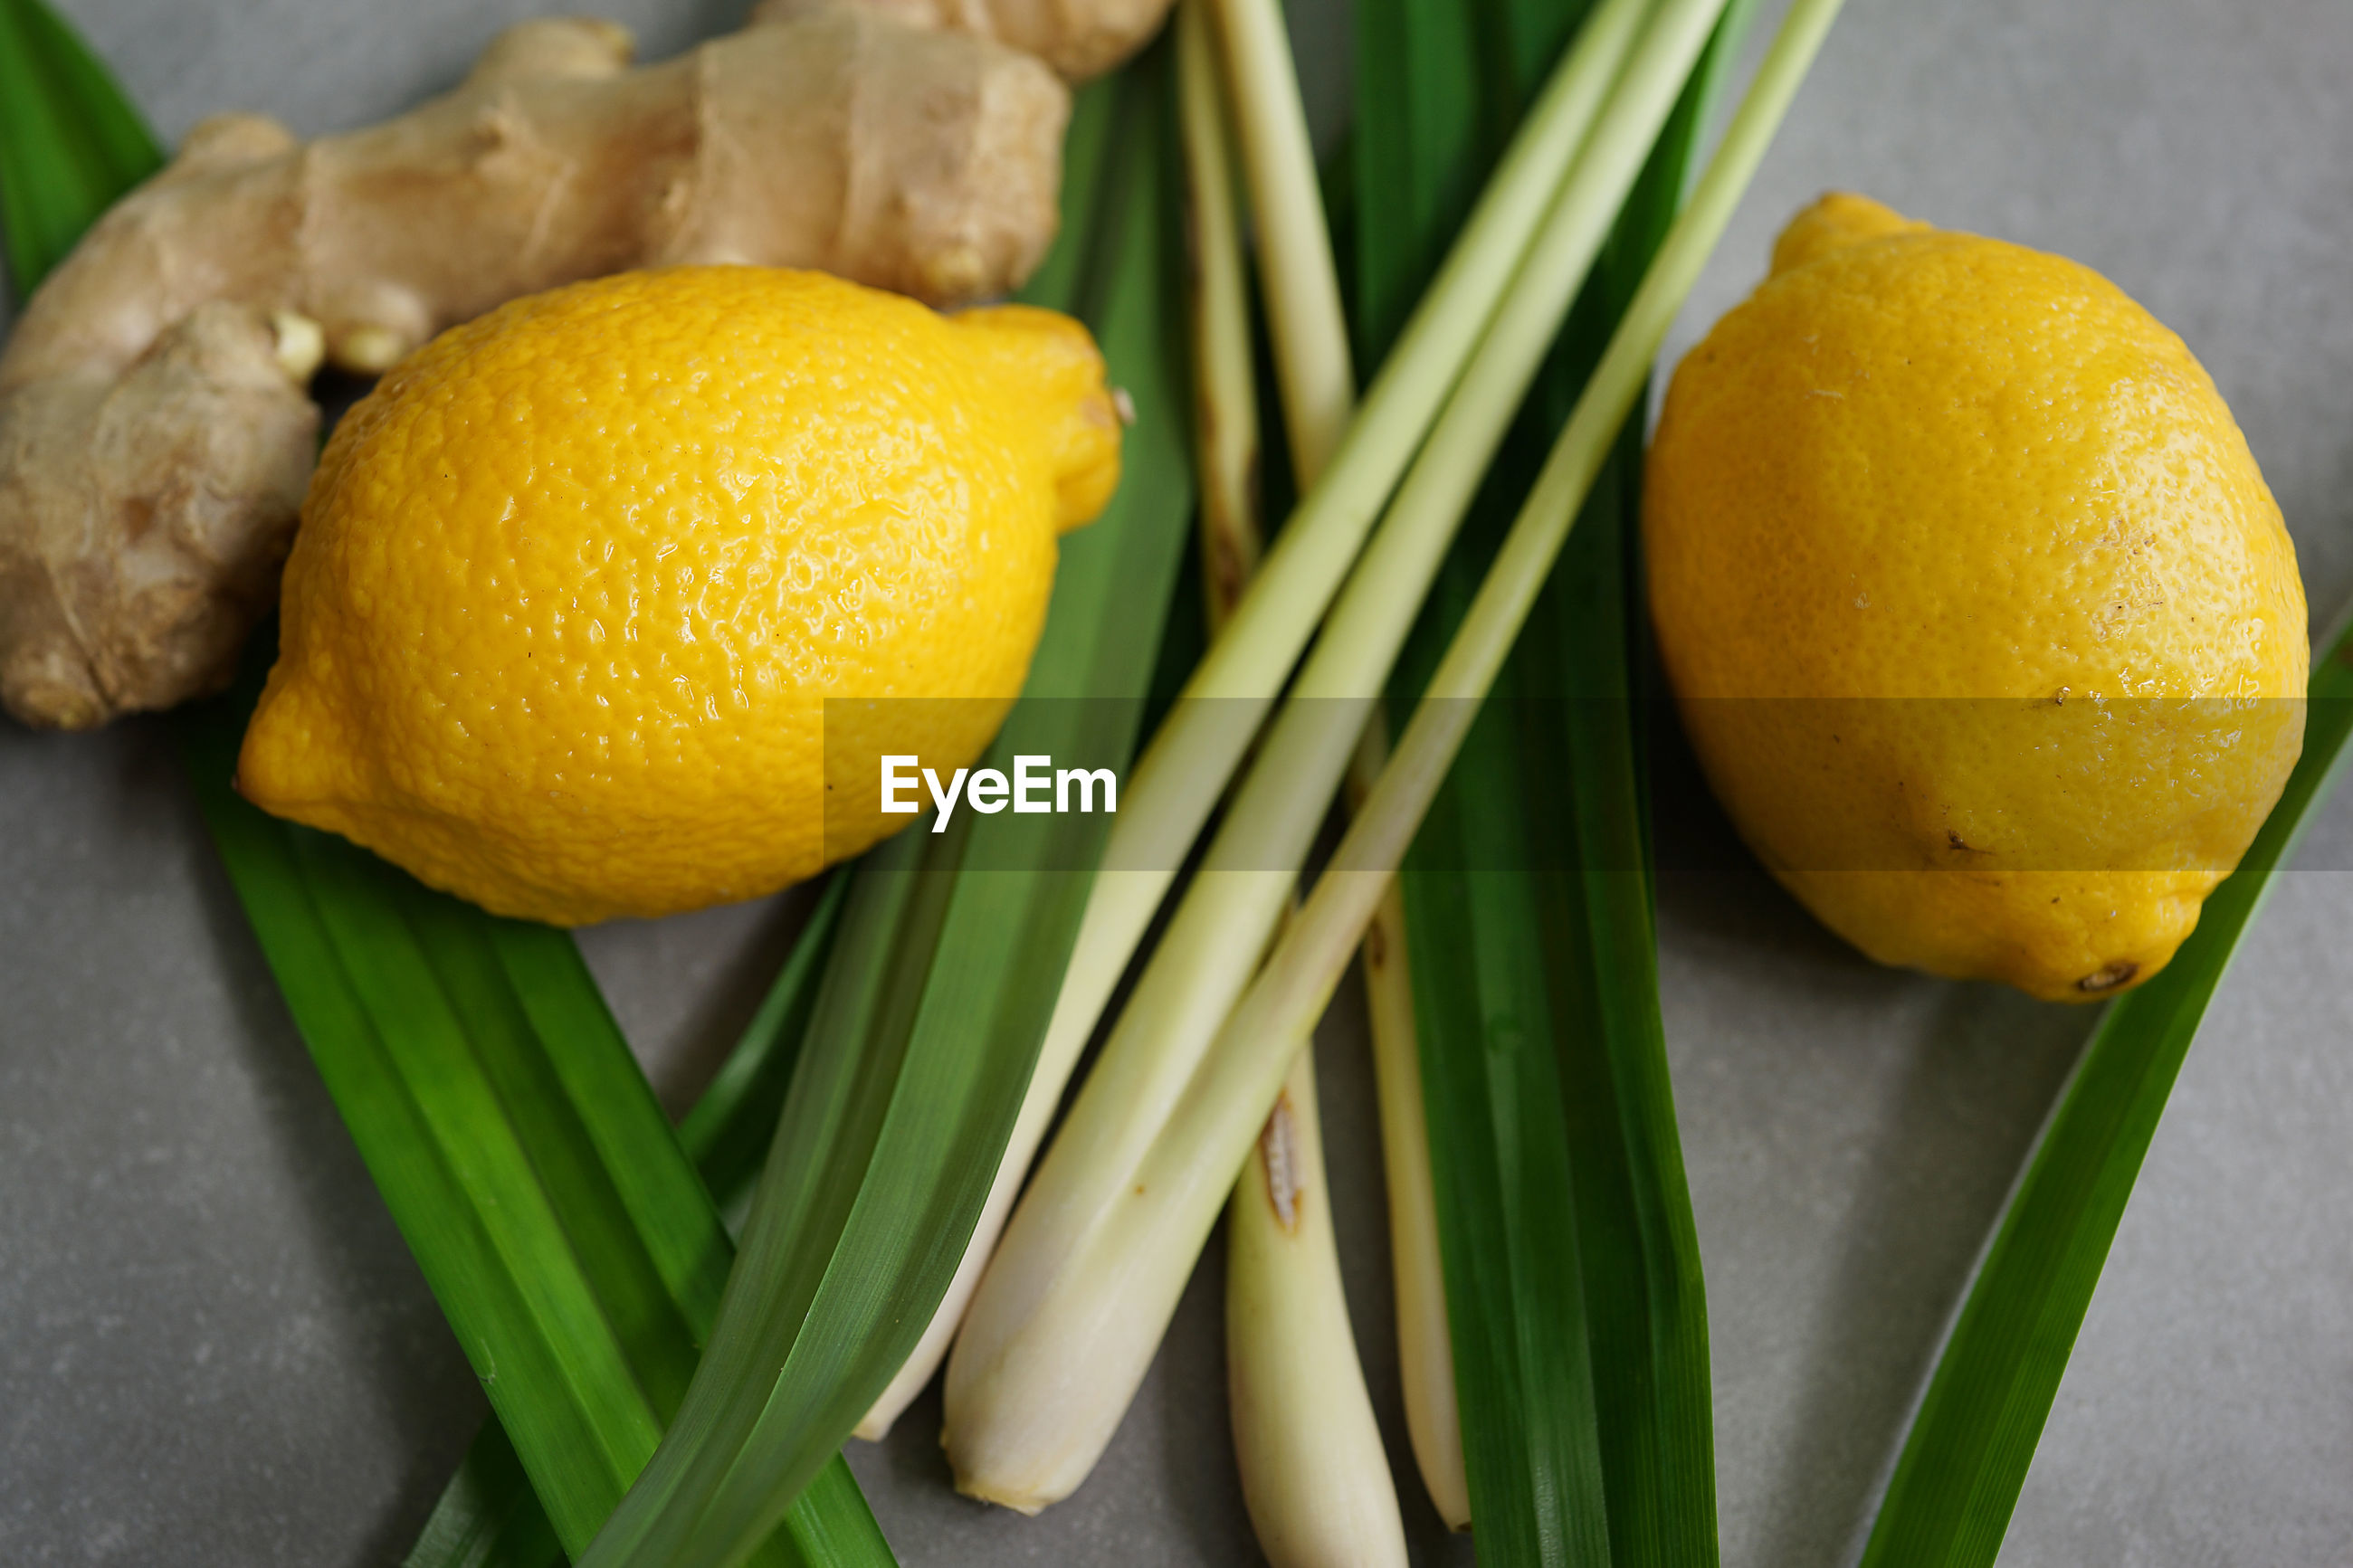 High angle view of lemon with ginger and vegetables on table